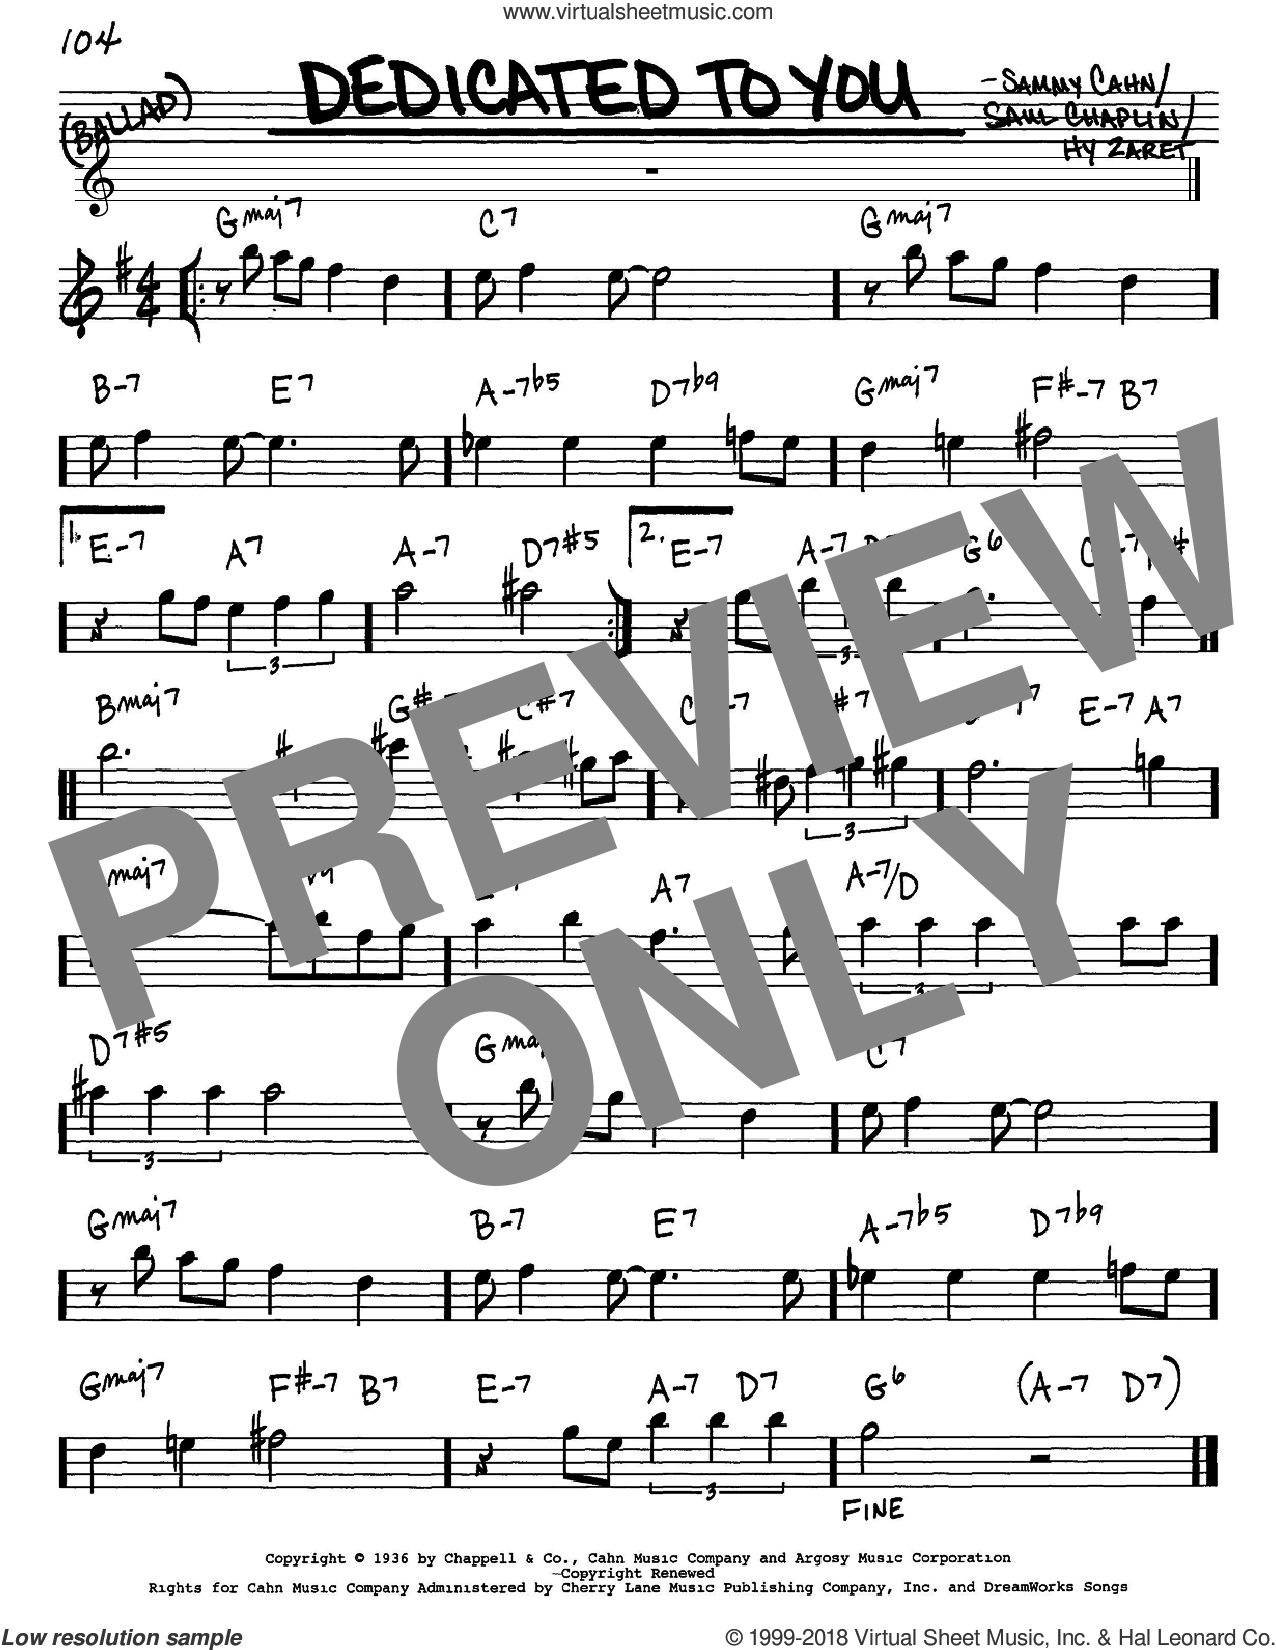 Dedicated To You sheet music for voice and other instruments (in Eb) by Sammy Cahn, Hy Zaret and Saul Chaplin, intermediate skill level